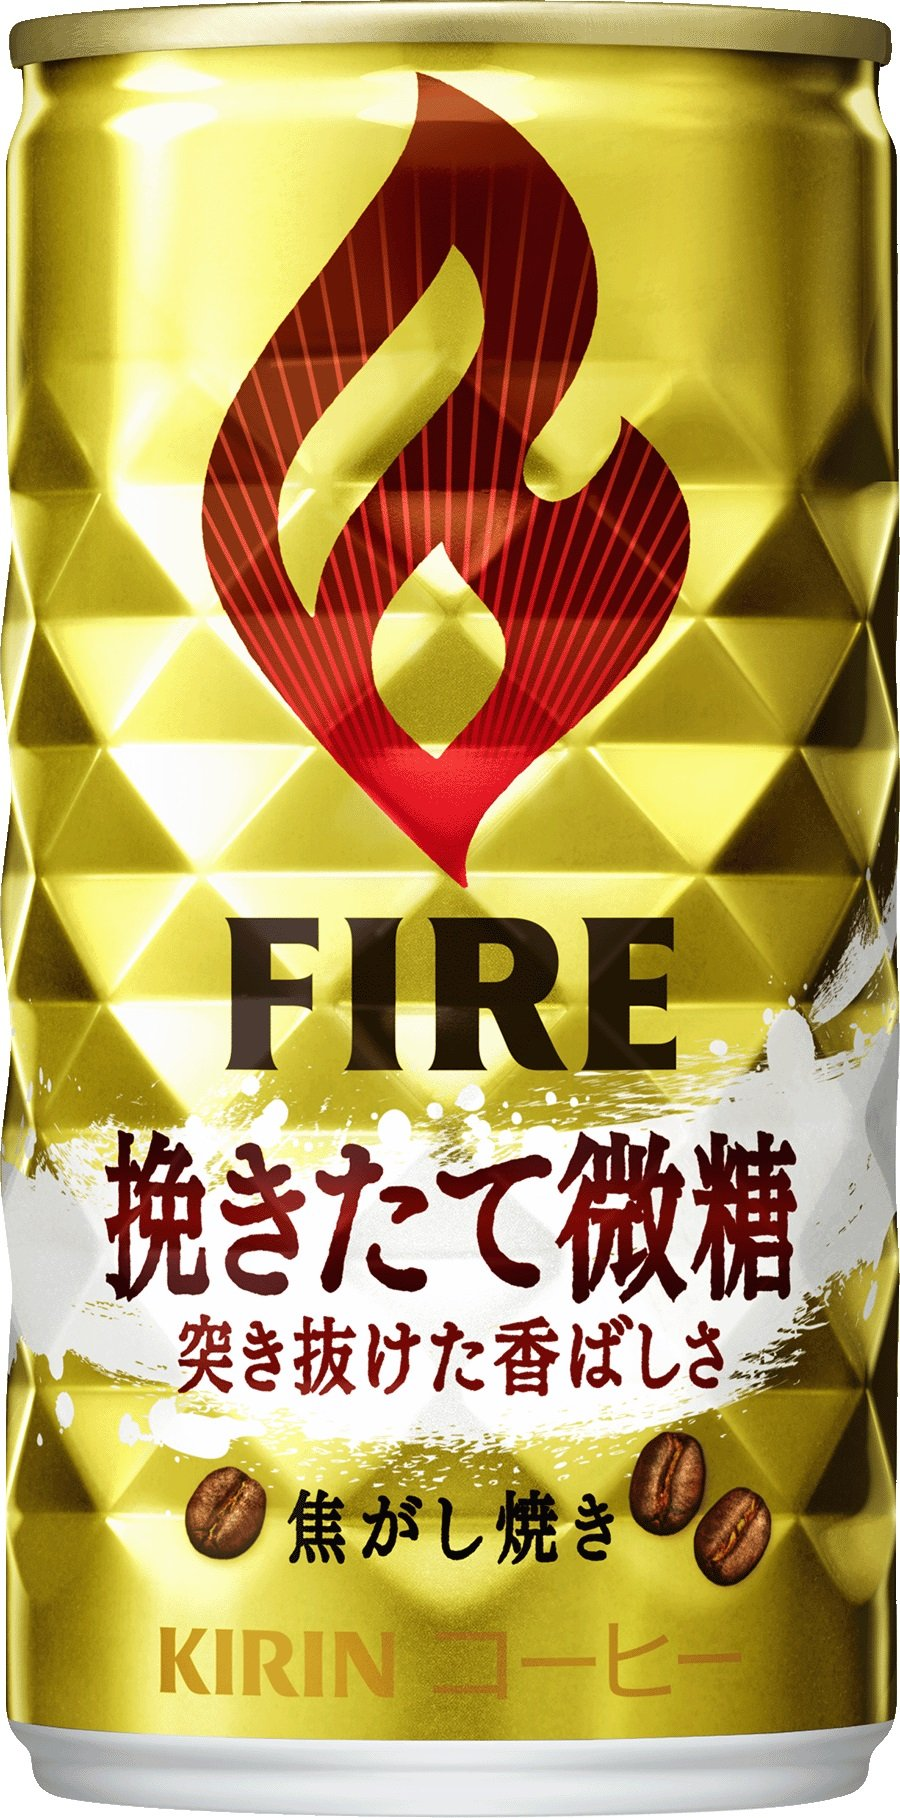 Kirin FIRE freshly ground low-sugar coffee 185g (30 cans) by Fire (Image #1)